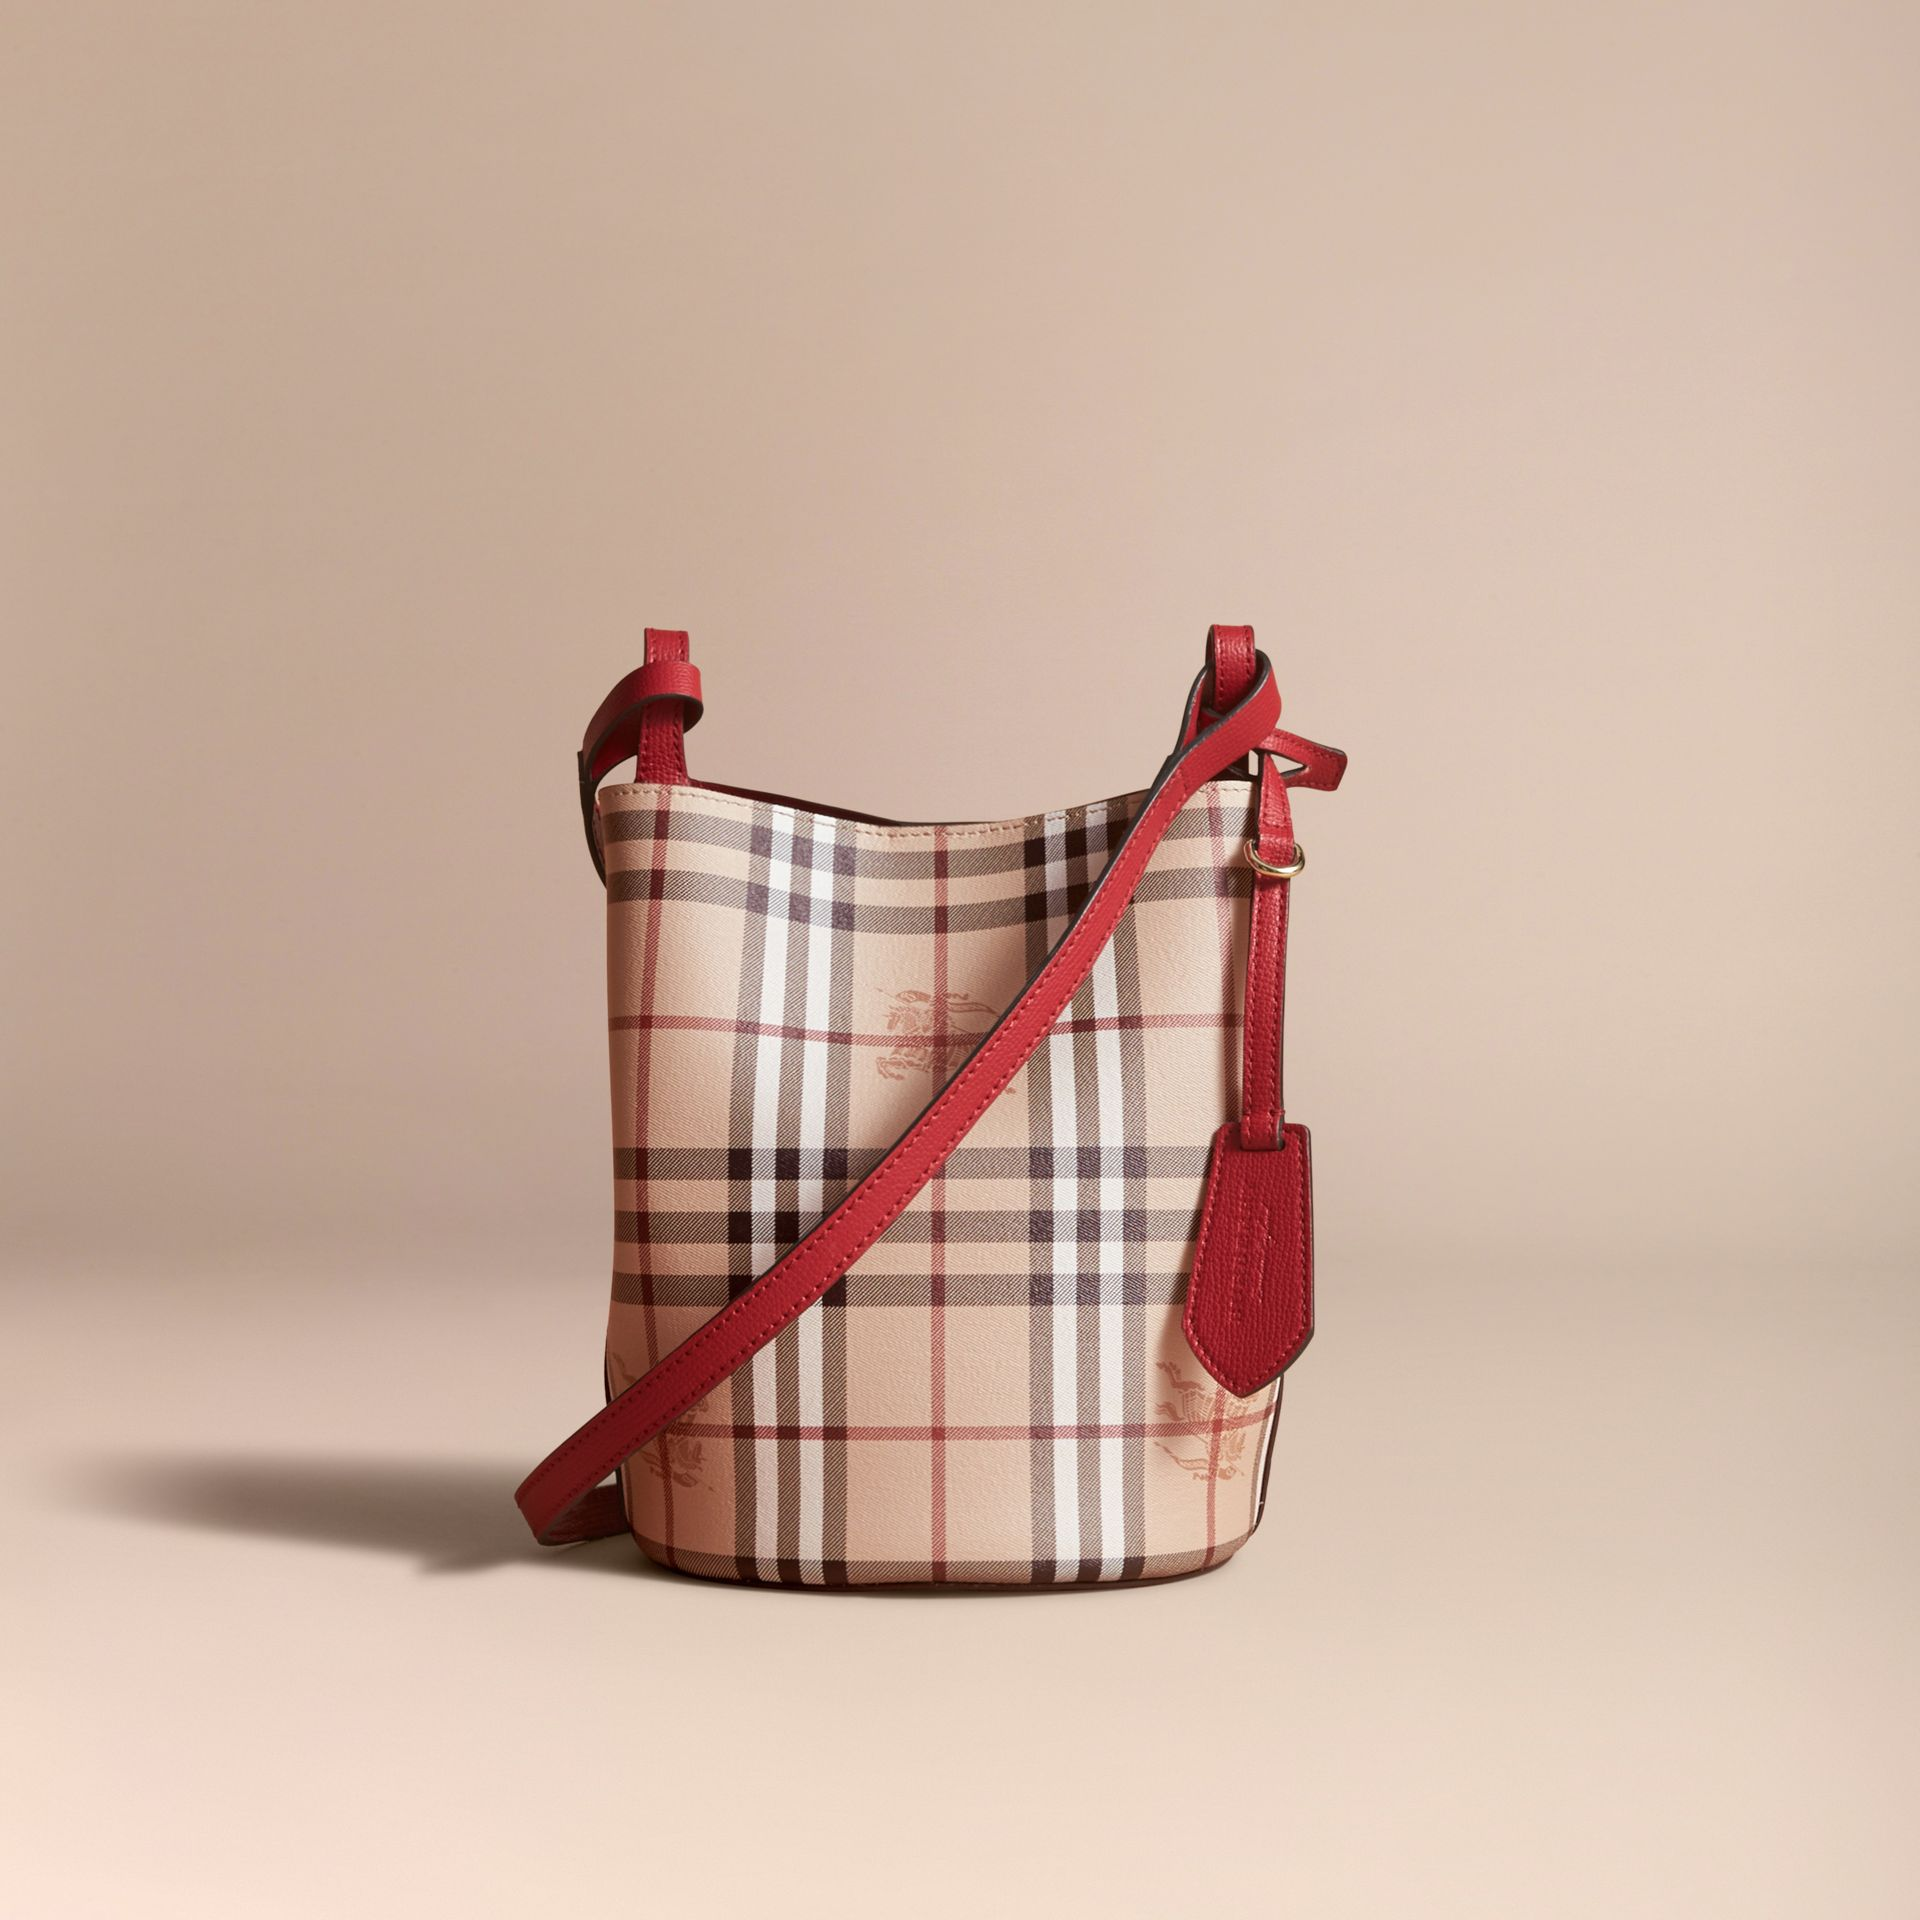 Leather and Haymarket Check Crossbody Bucket Bag in Poppy Red - Women | Burberry - gallery image 7